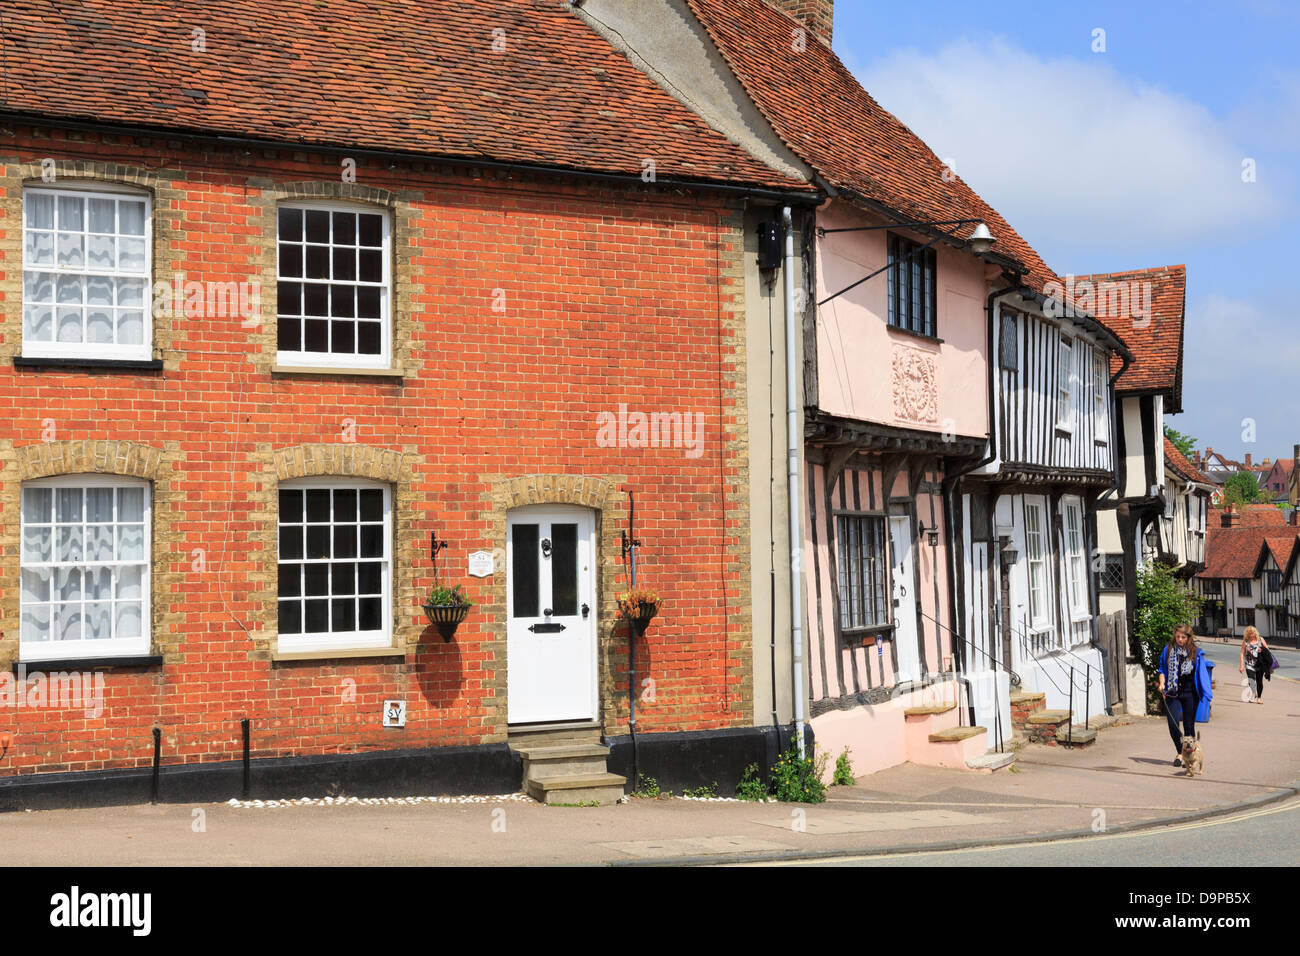 Old houses on the main street in the medieval village of Lavenham, Suffolk, England, UK, Britain - Stock Image